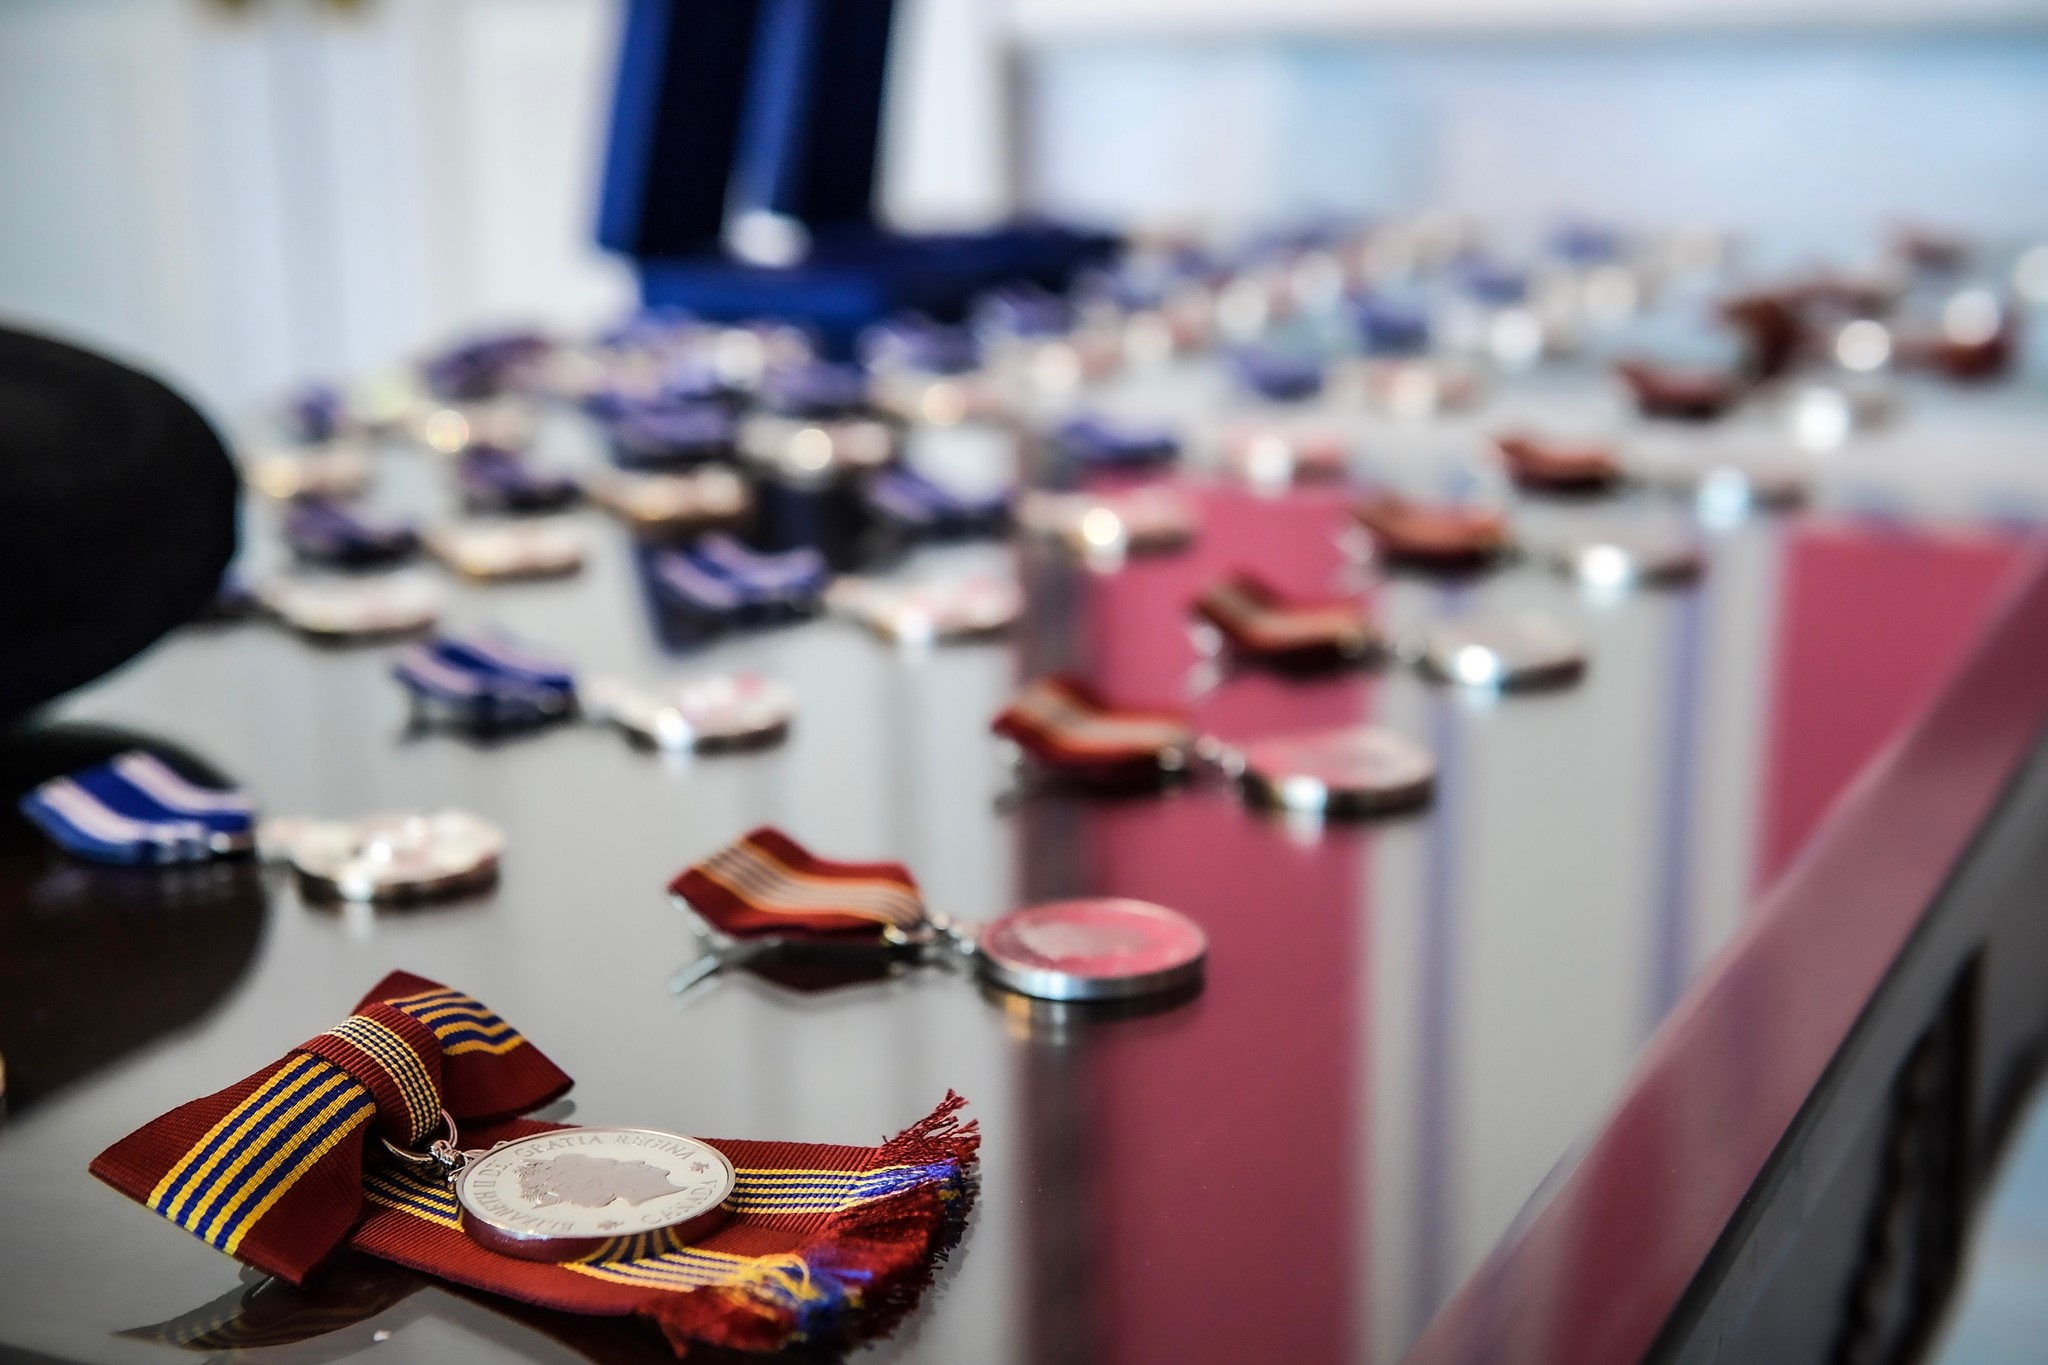 Various medals, with ribbons attached, are lined up in rows on a table.